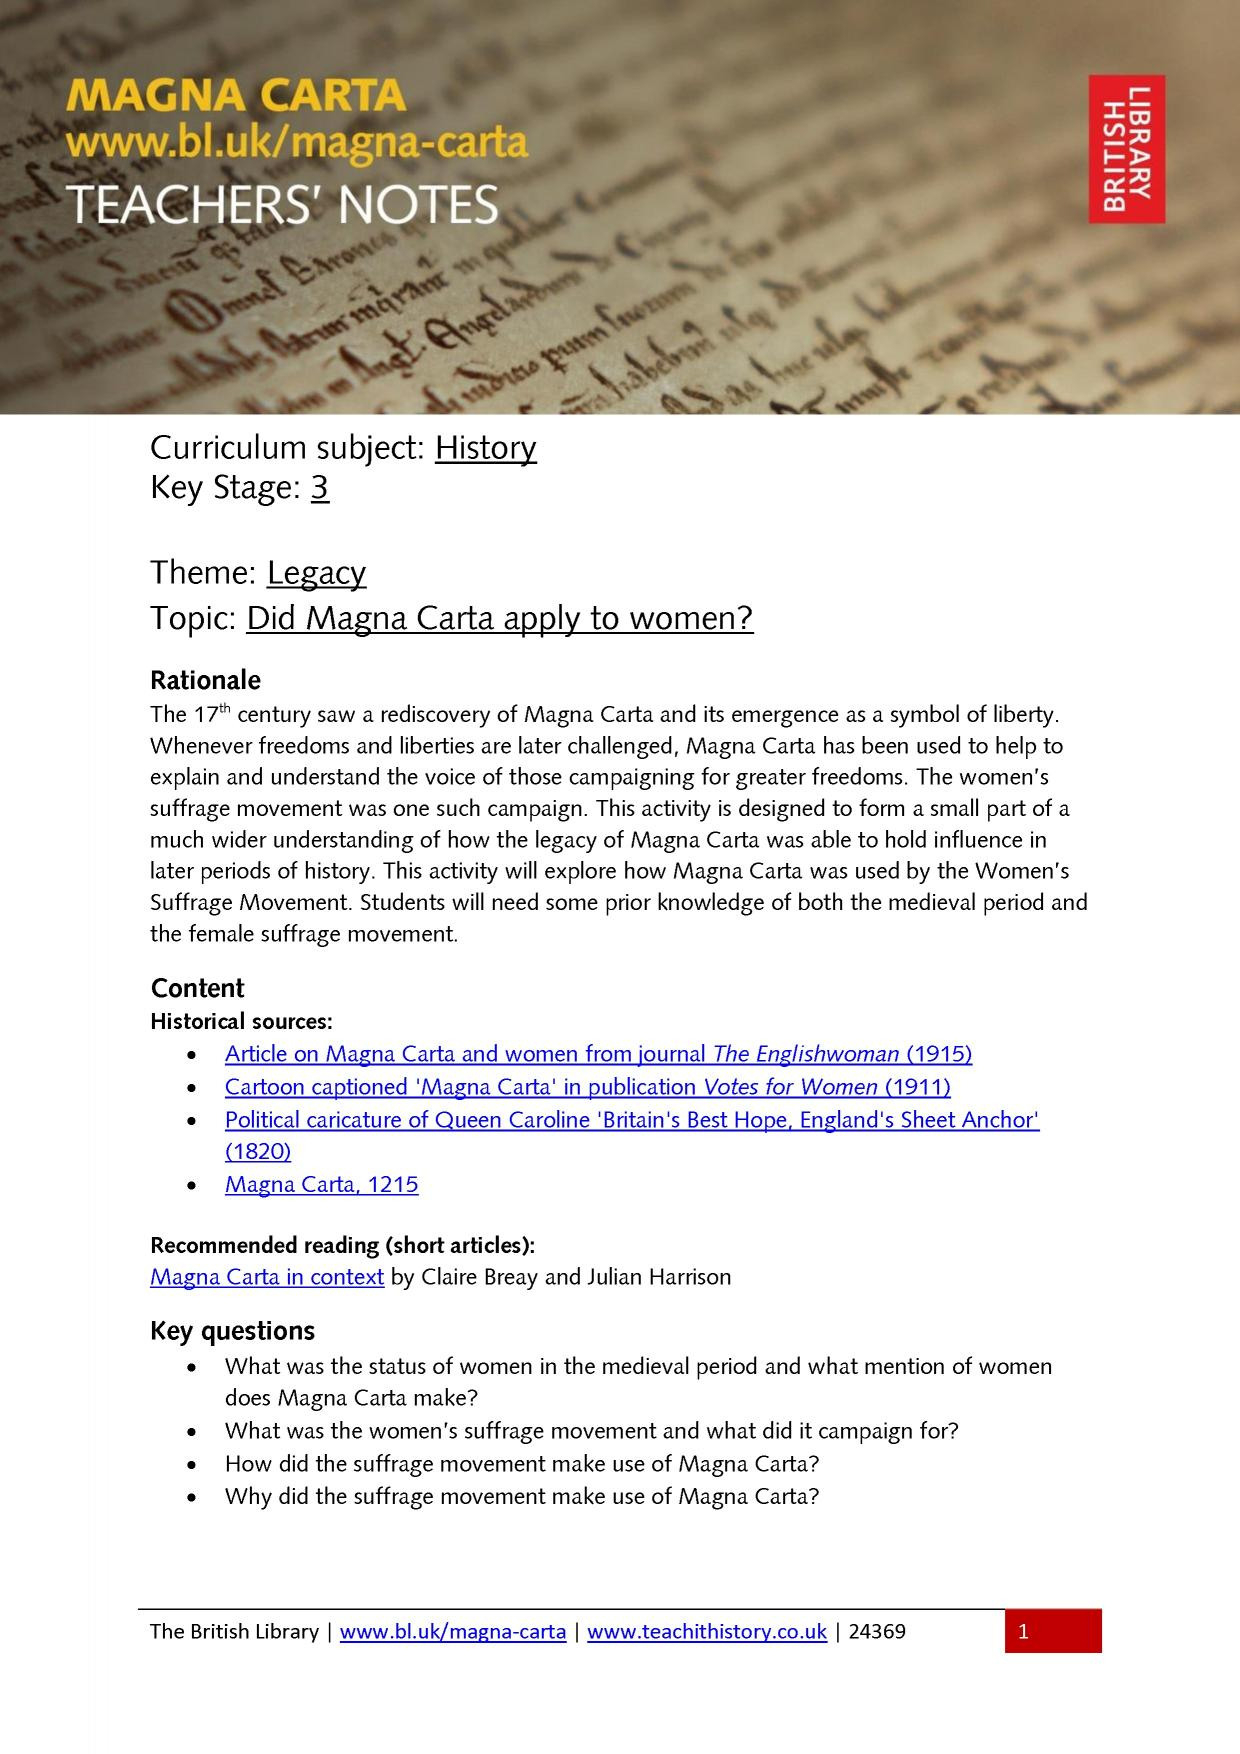 British Library Magna Carta Resources Search Results